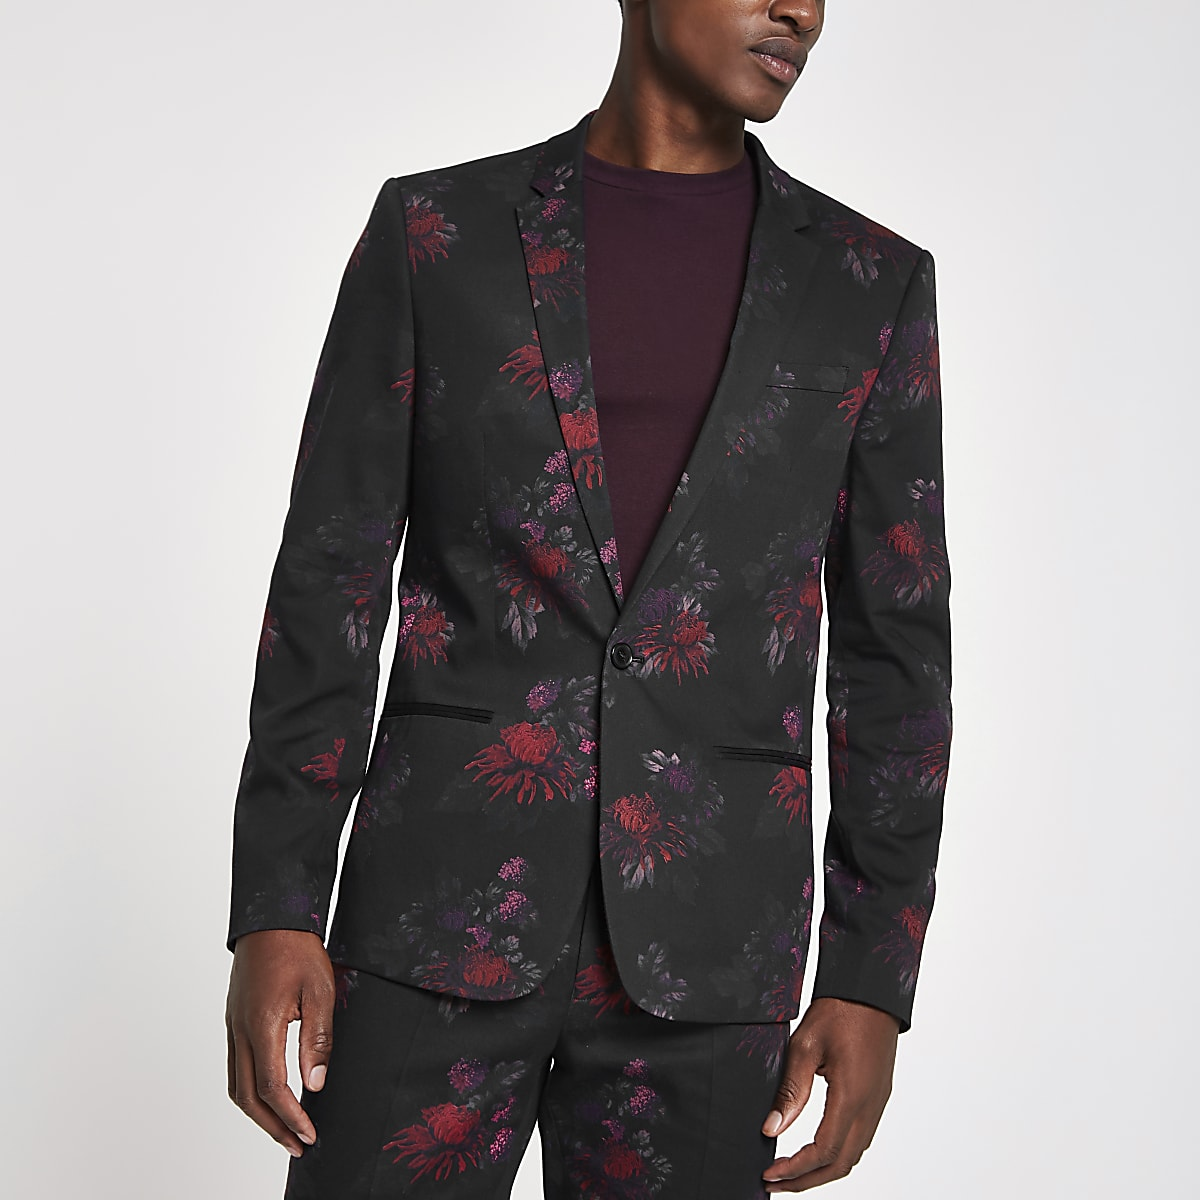 Black floral skinny suit jacket